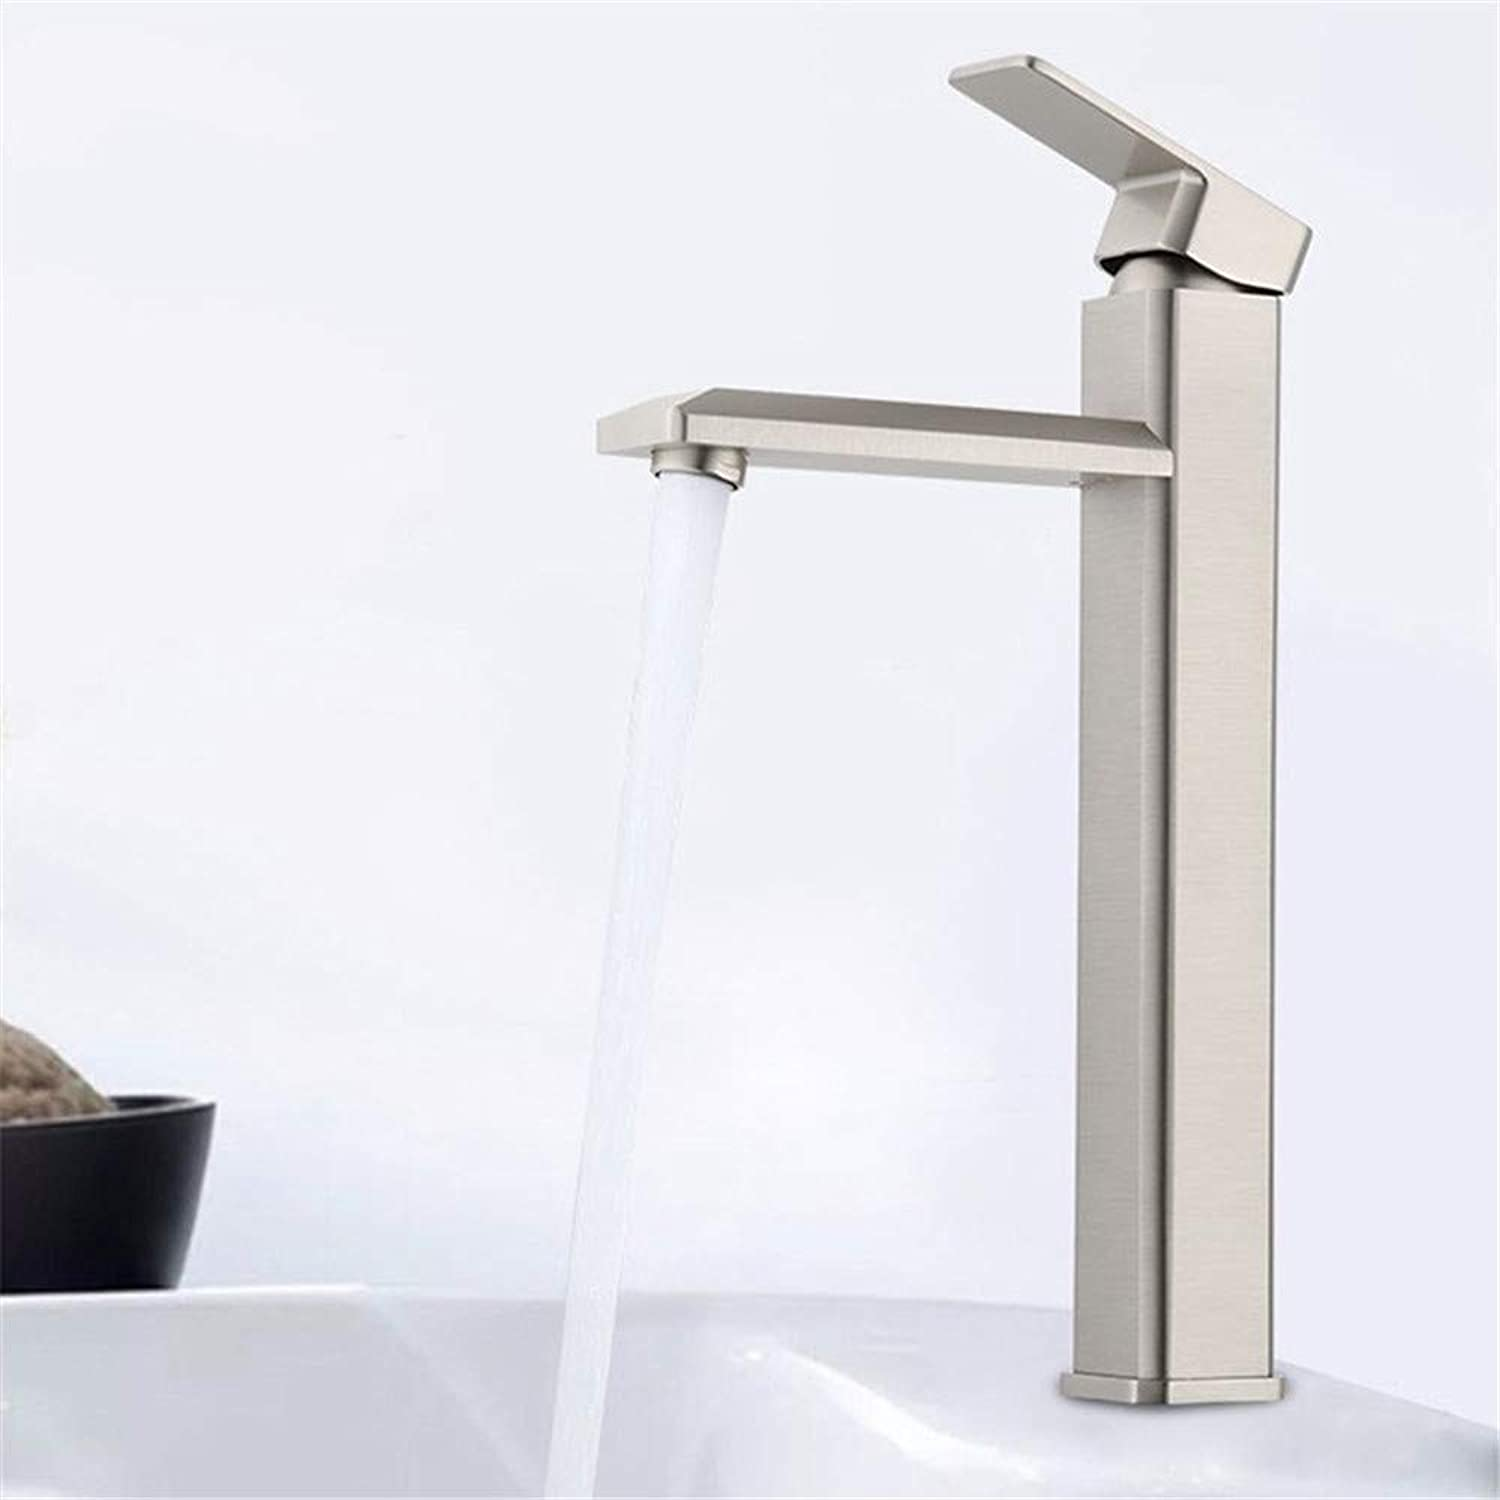 Oudan Hole Basin Faucet Hot and Cold Shower Faucet Mixing Faucet Full Copper Wire Drawing (color   -, Size   -)